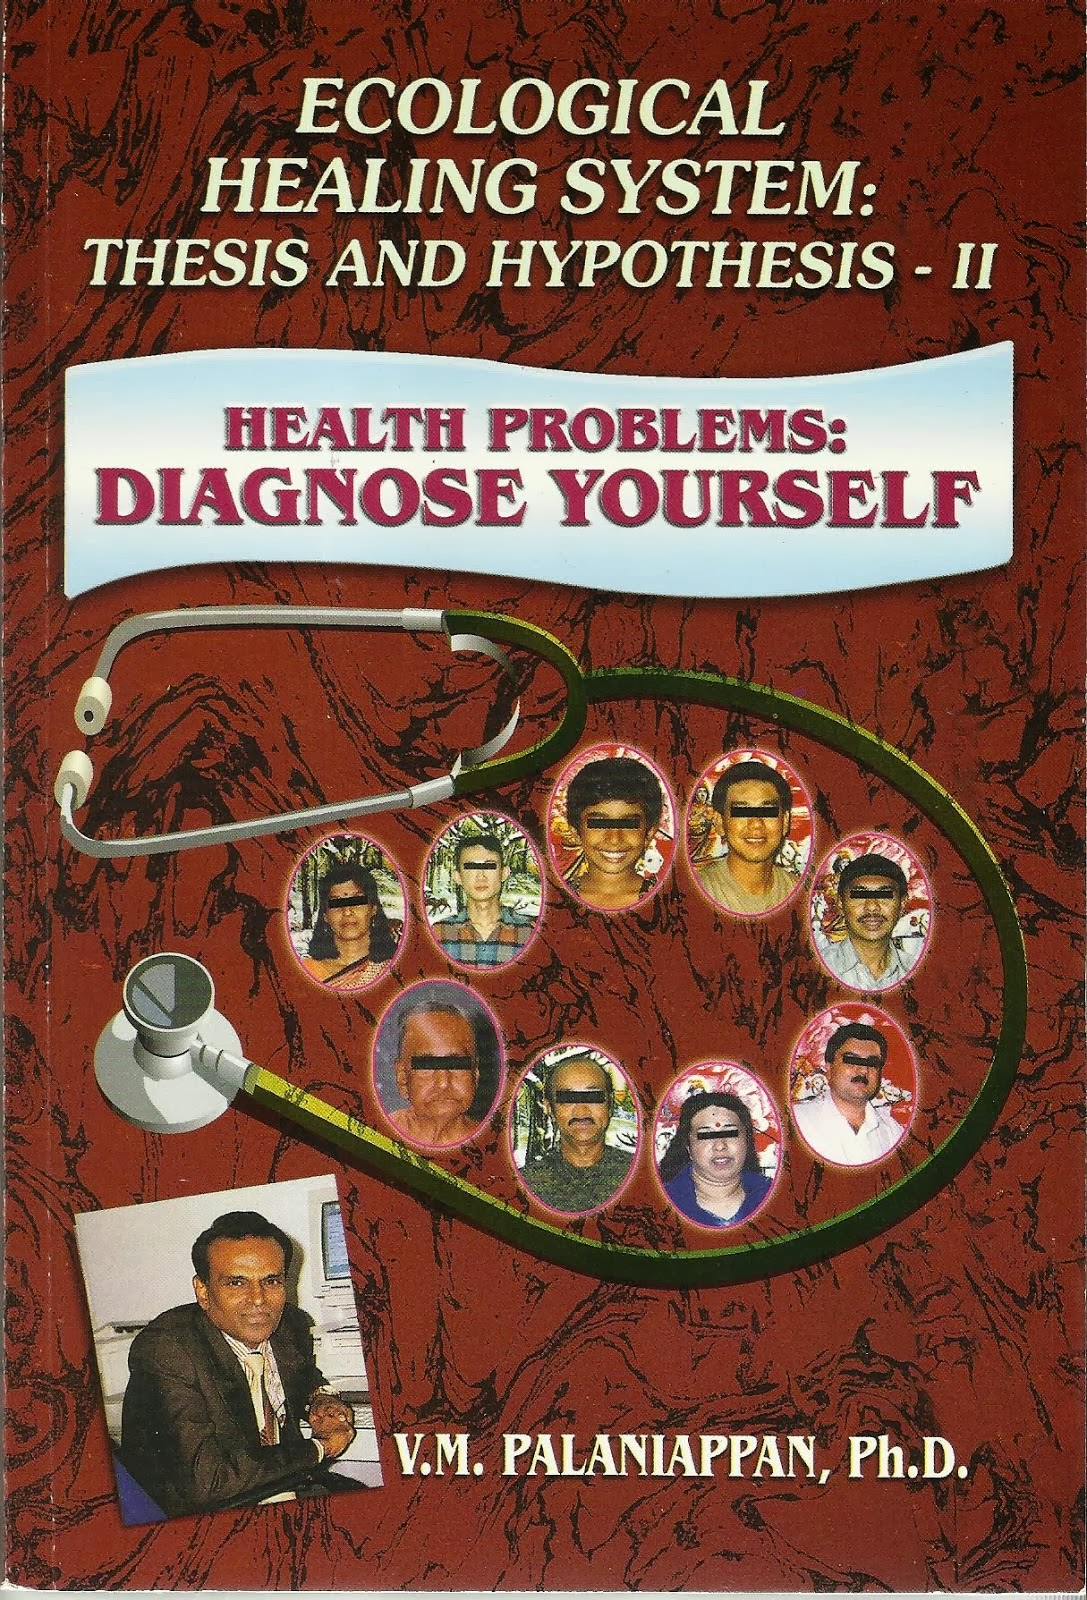 HEALTH PROBLEMS: DIAGNOSE YOURSELF